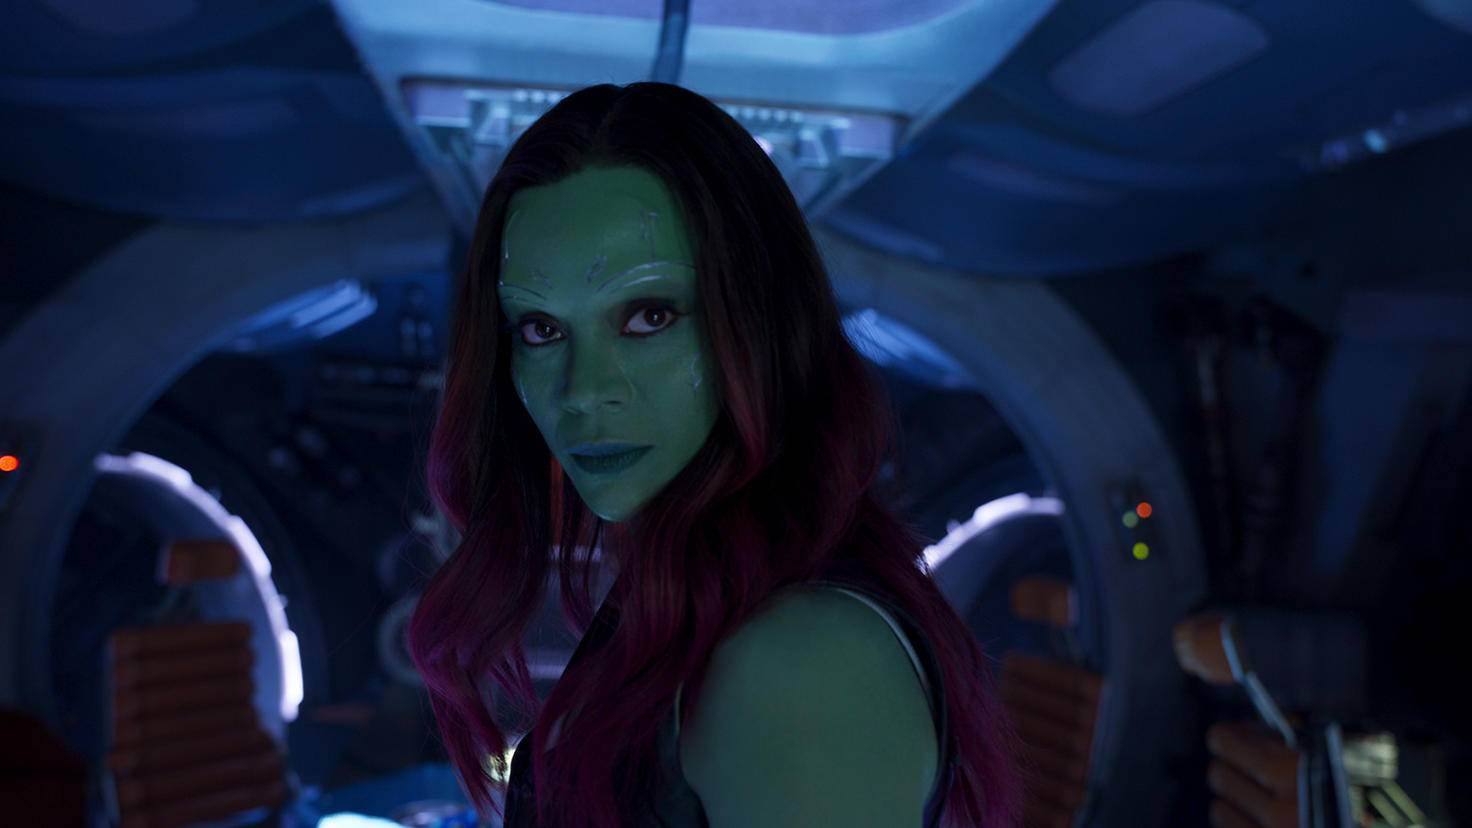 Gamora-Guardians of the Galaxy 2-Disney